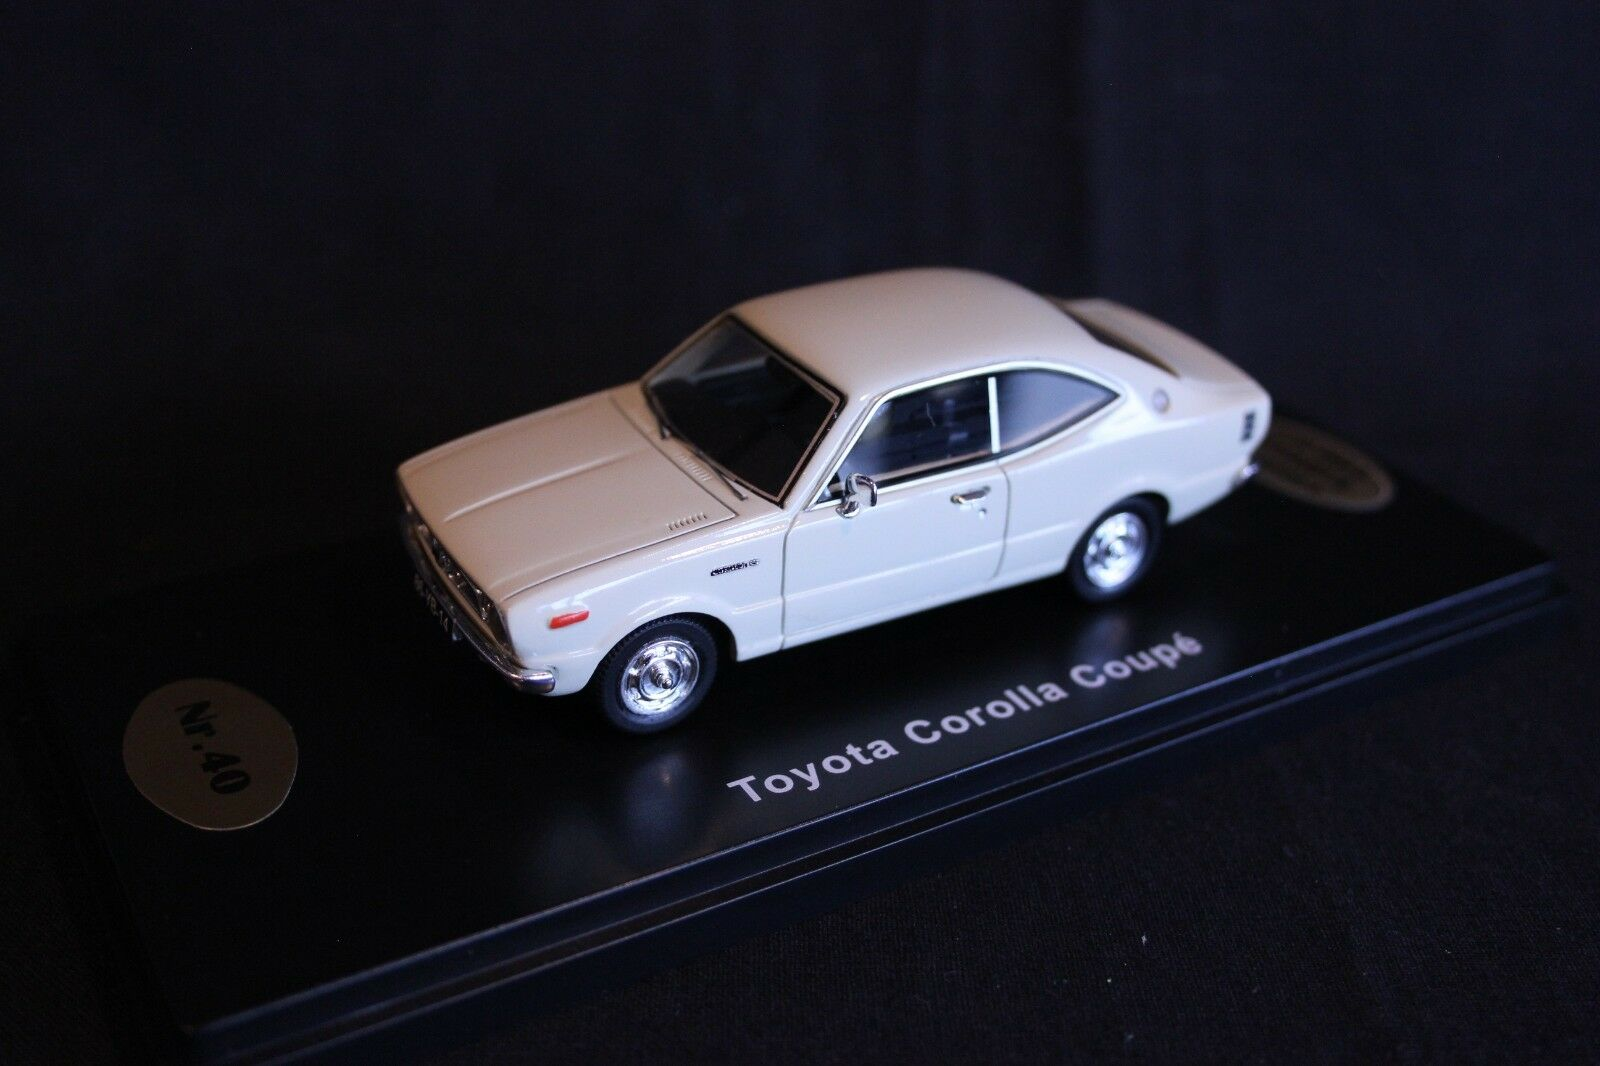 QSP Model Collection Toyota Cgoldlla E35 Coupé 1 43 White